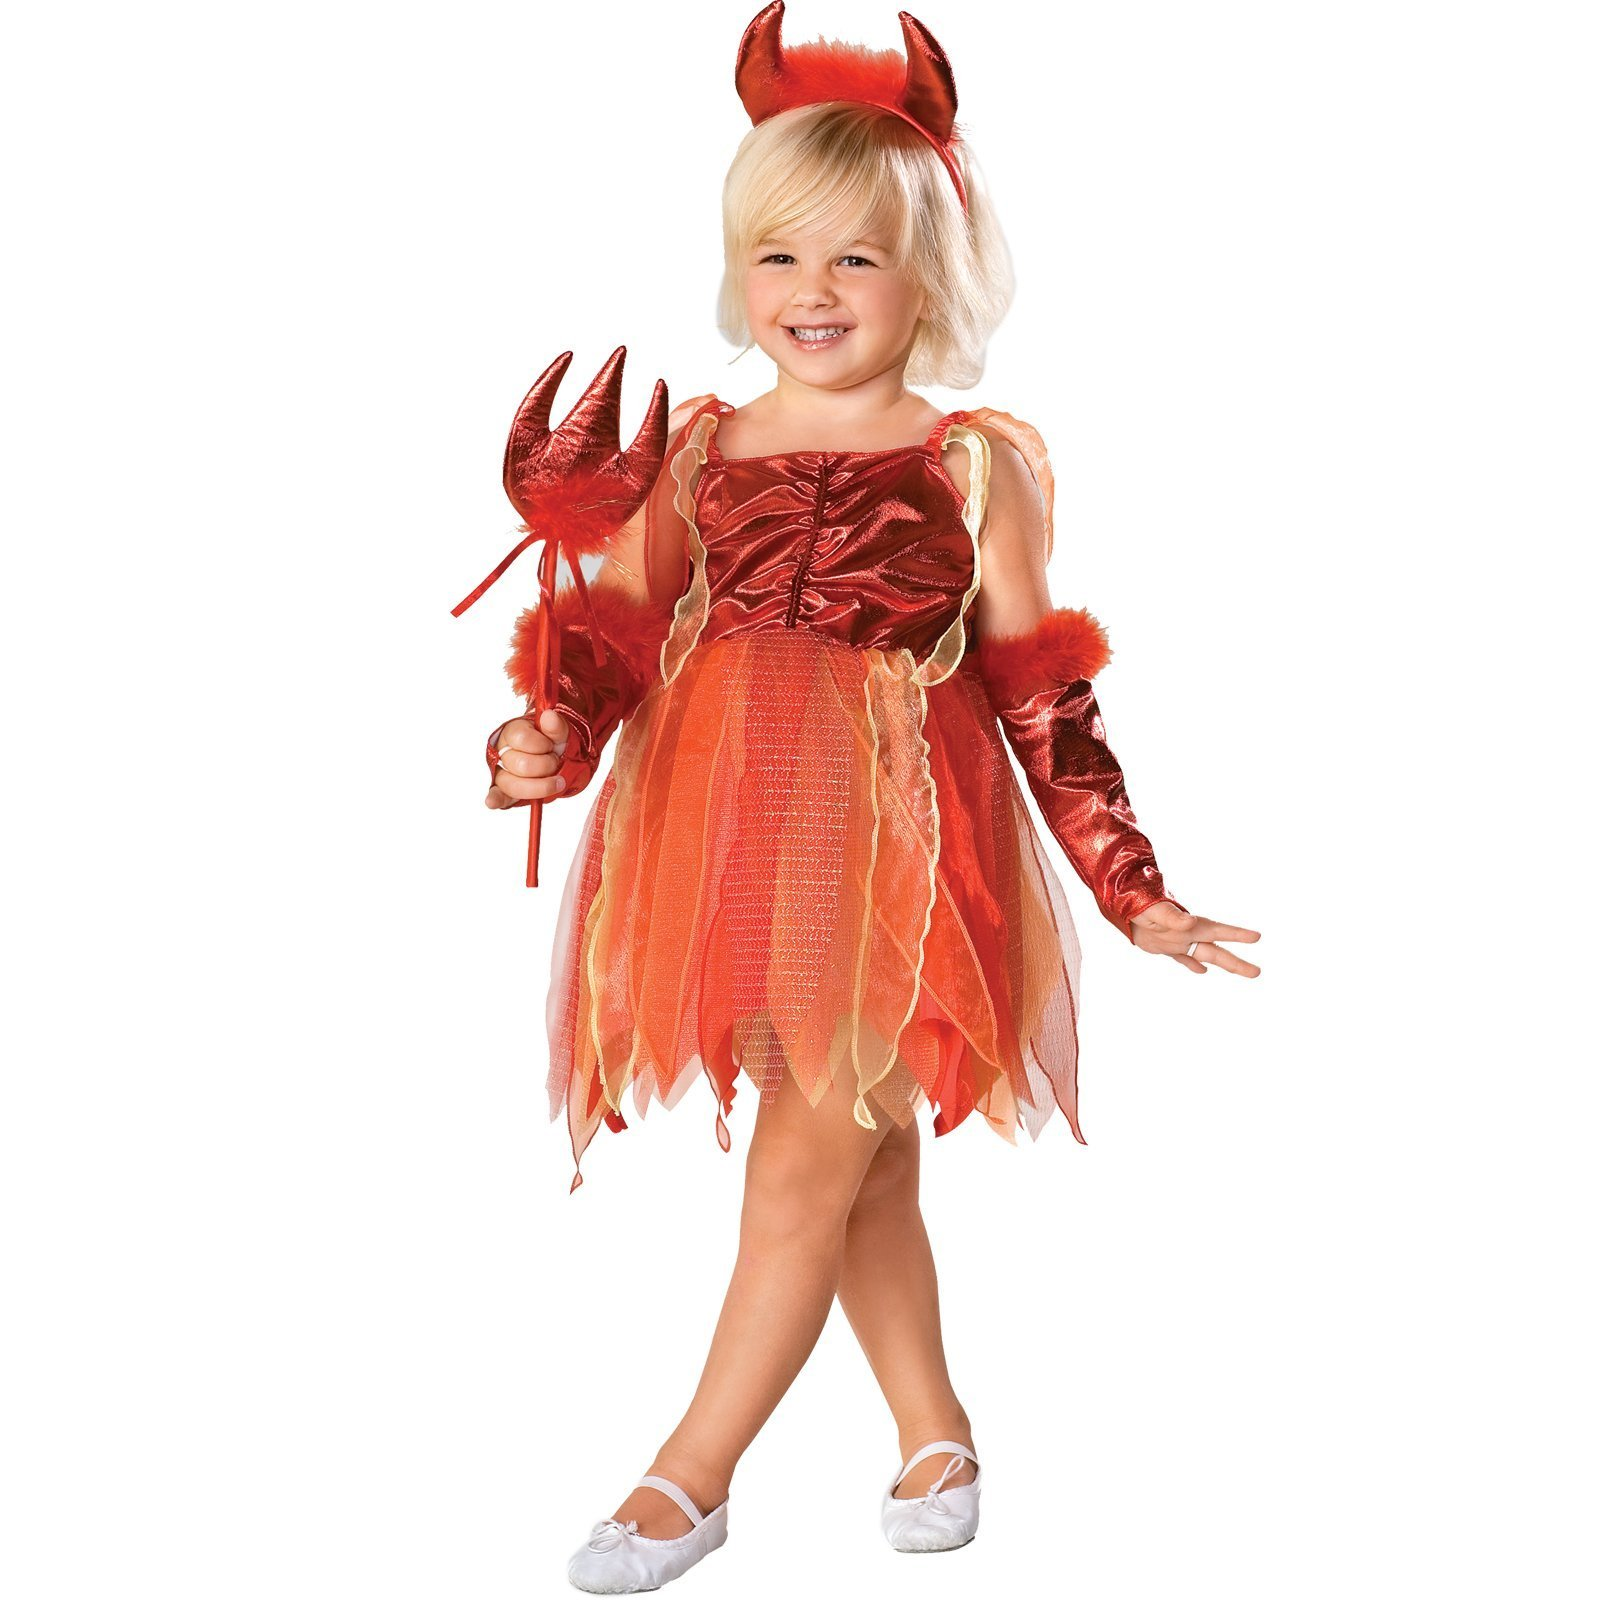 Image 0 of Rubies Red Orange Lil Devil Costume - Medium Child's 8-10